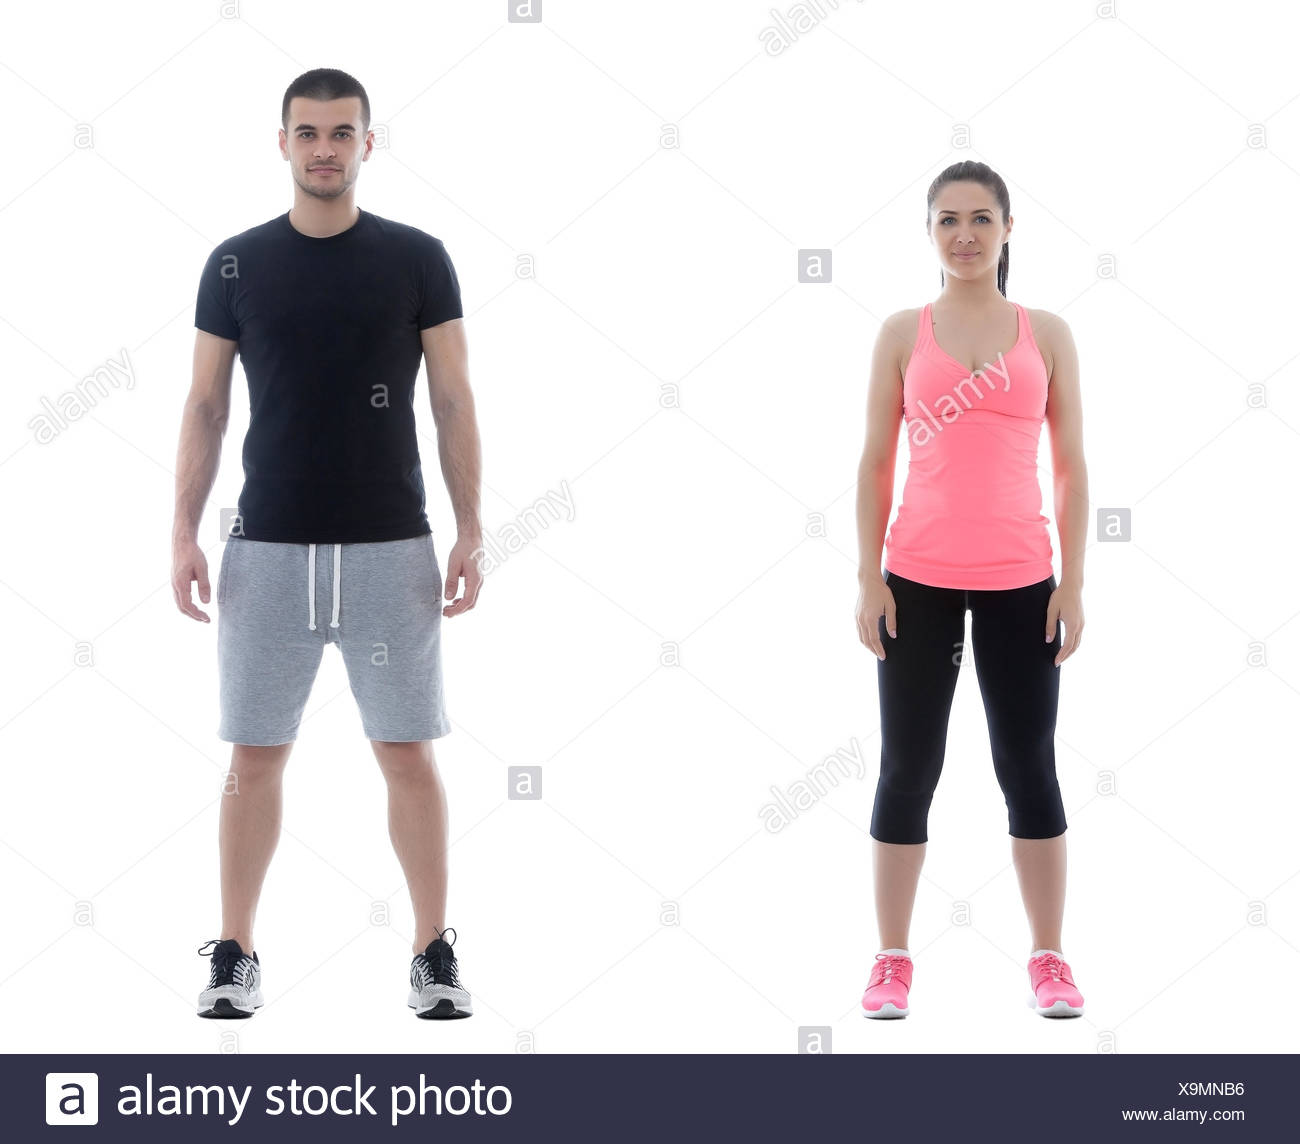 Fitness man and woman - Stock Image